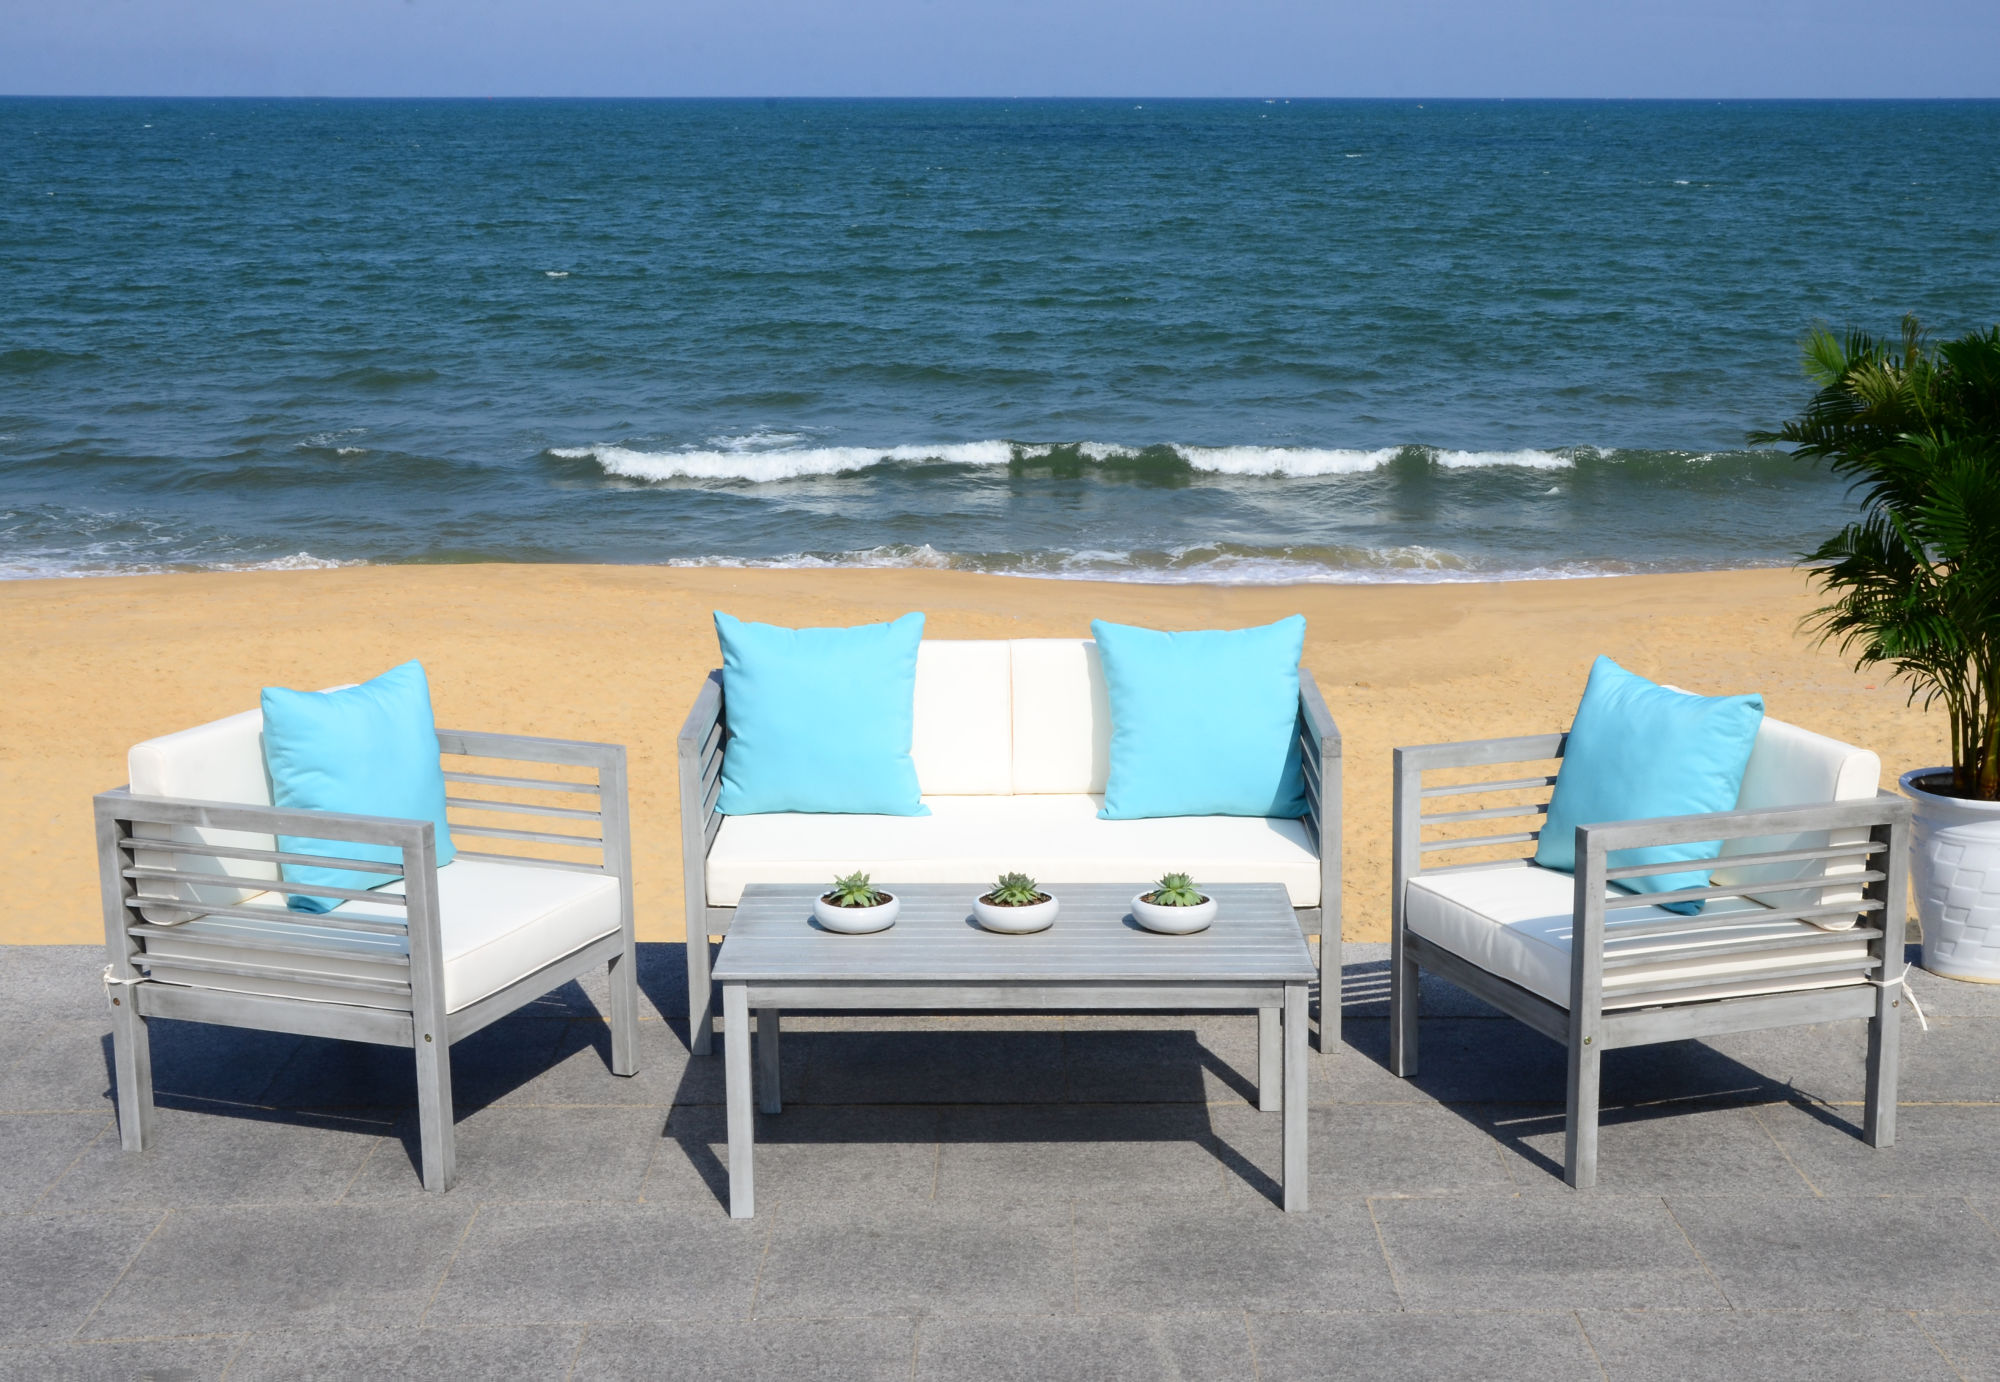 Alda 4 Pc Outdoor Set With Accent Pillows on Safavieh Alda 4Pc Outdoor Set id=46265